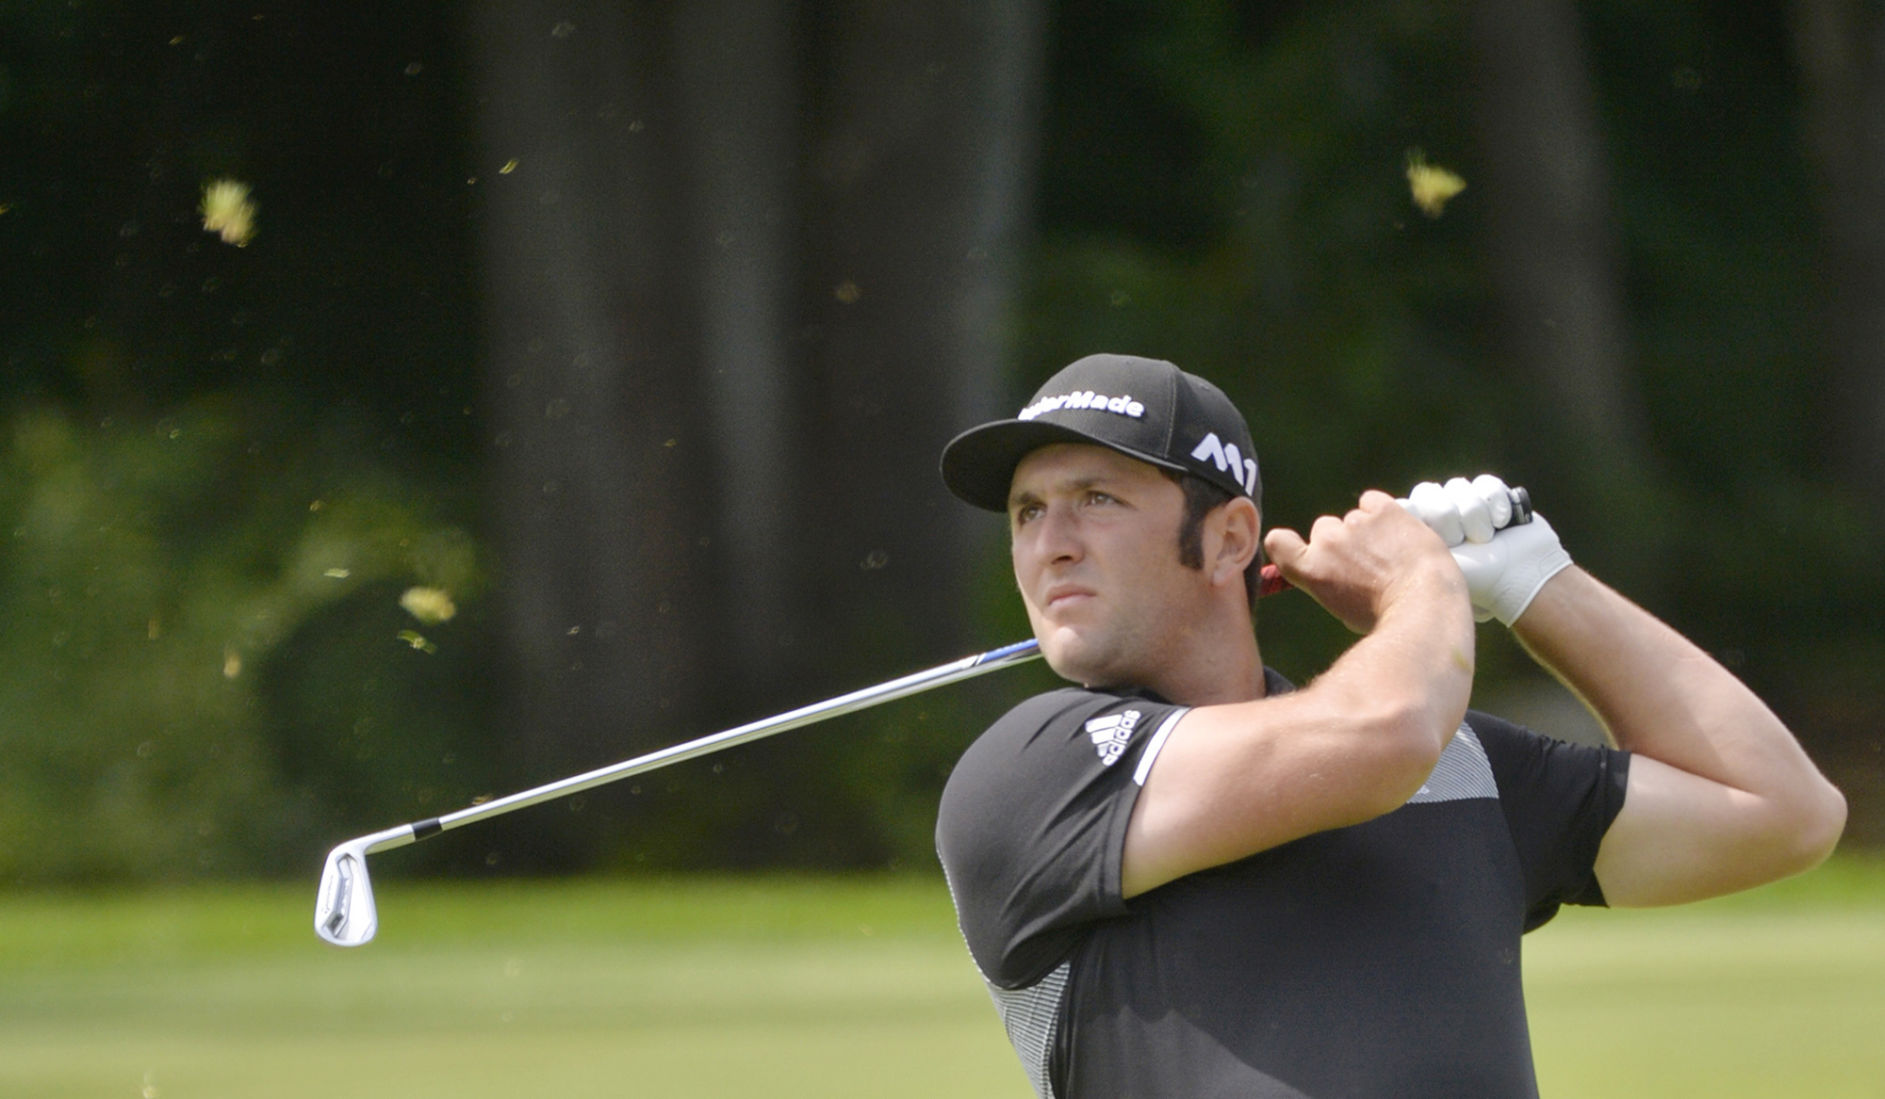 Everything clicked, says leader Jon Rahm